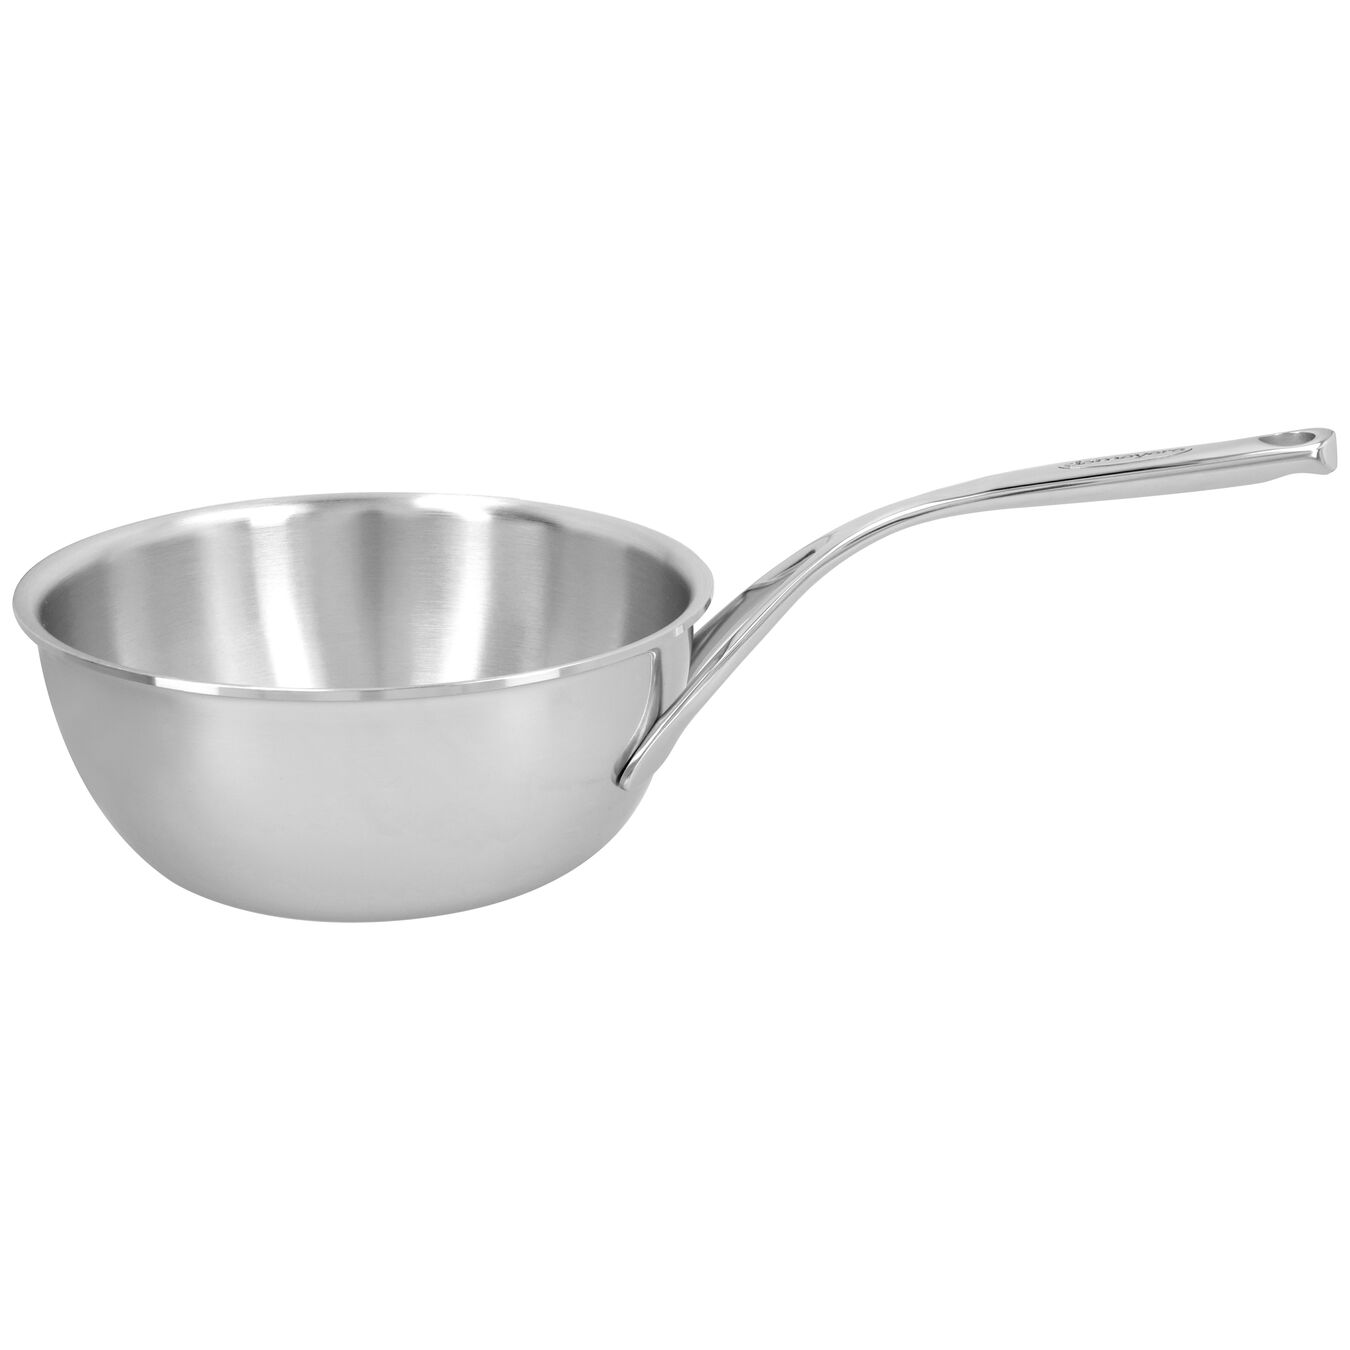 Sauteuse conique 22 cm, Inox 18/10,,large 1